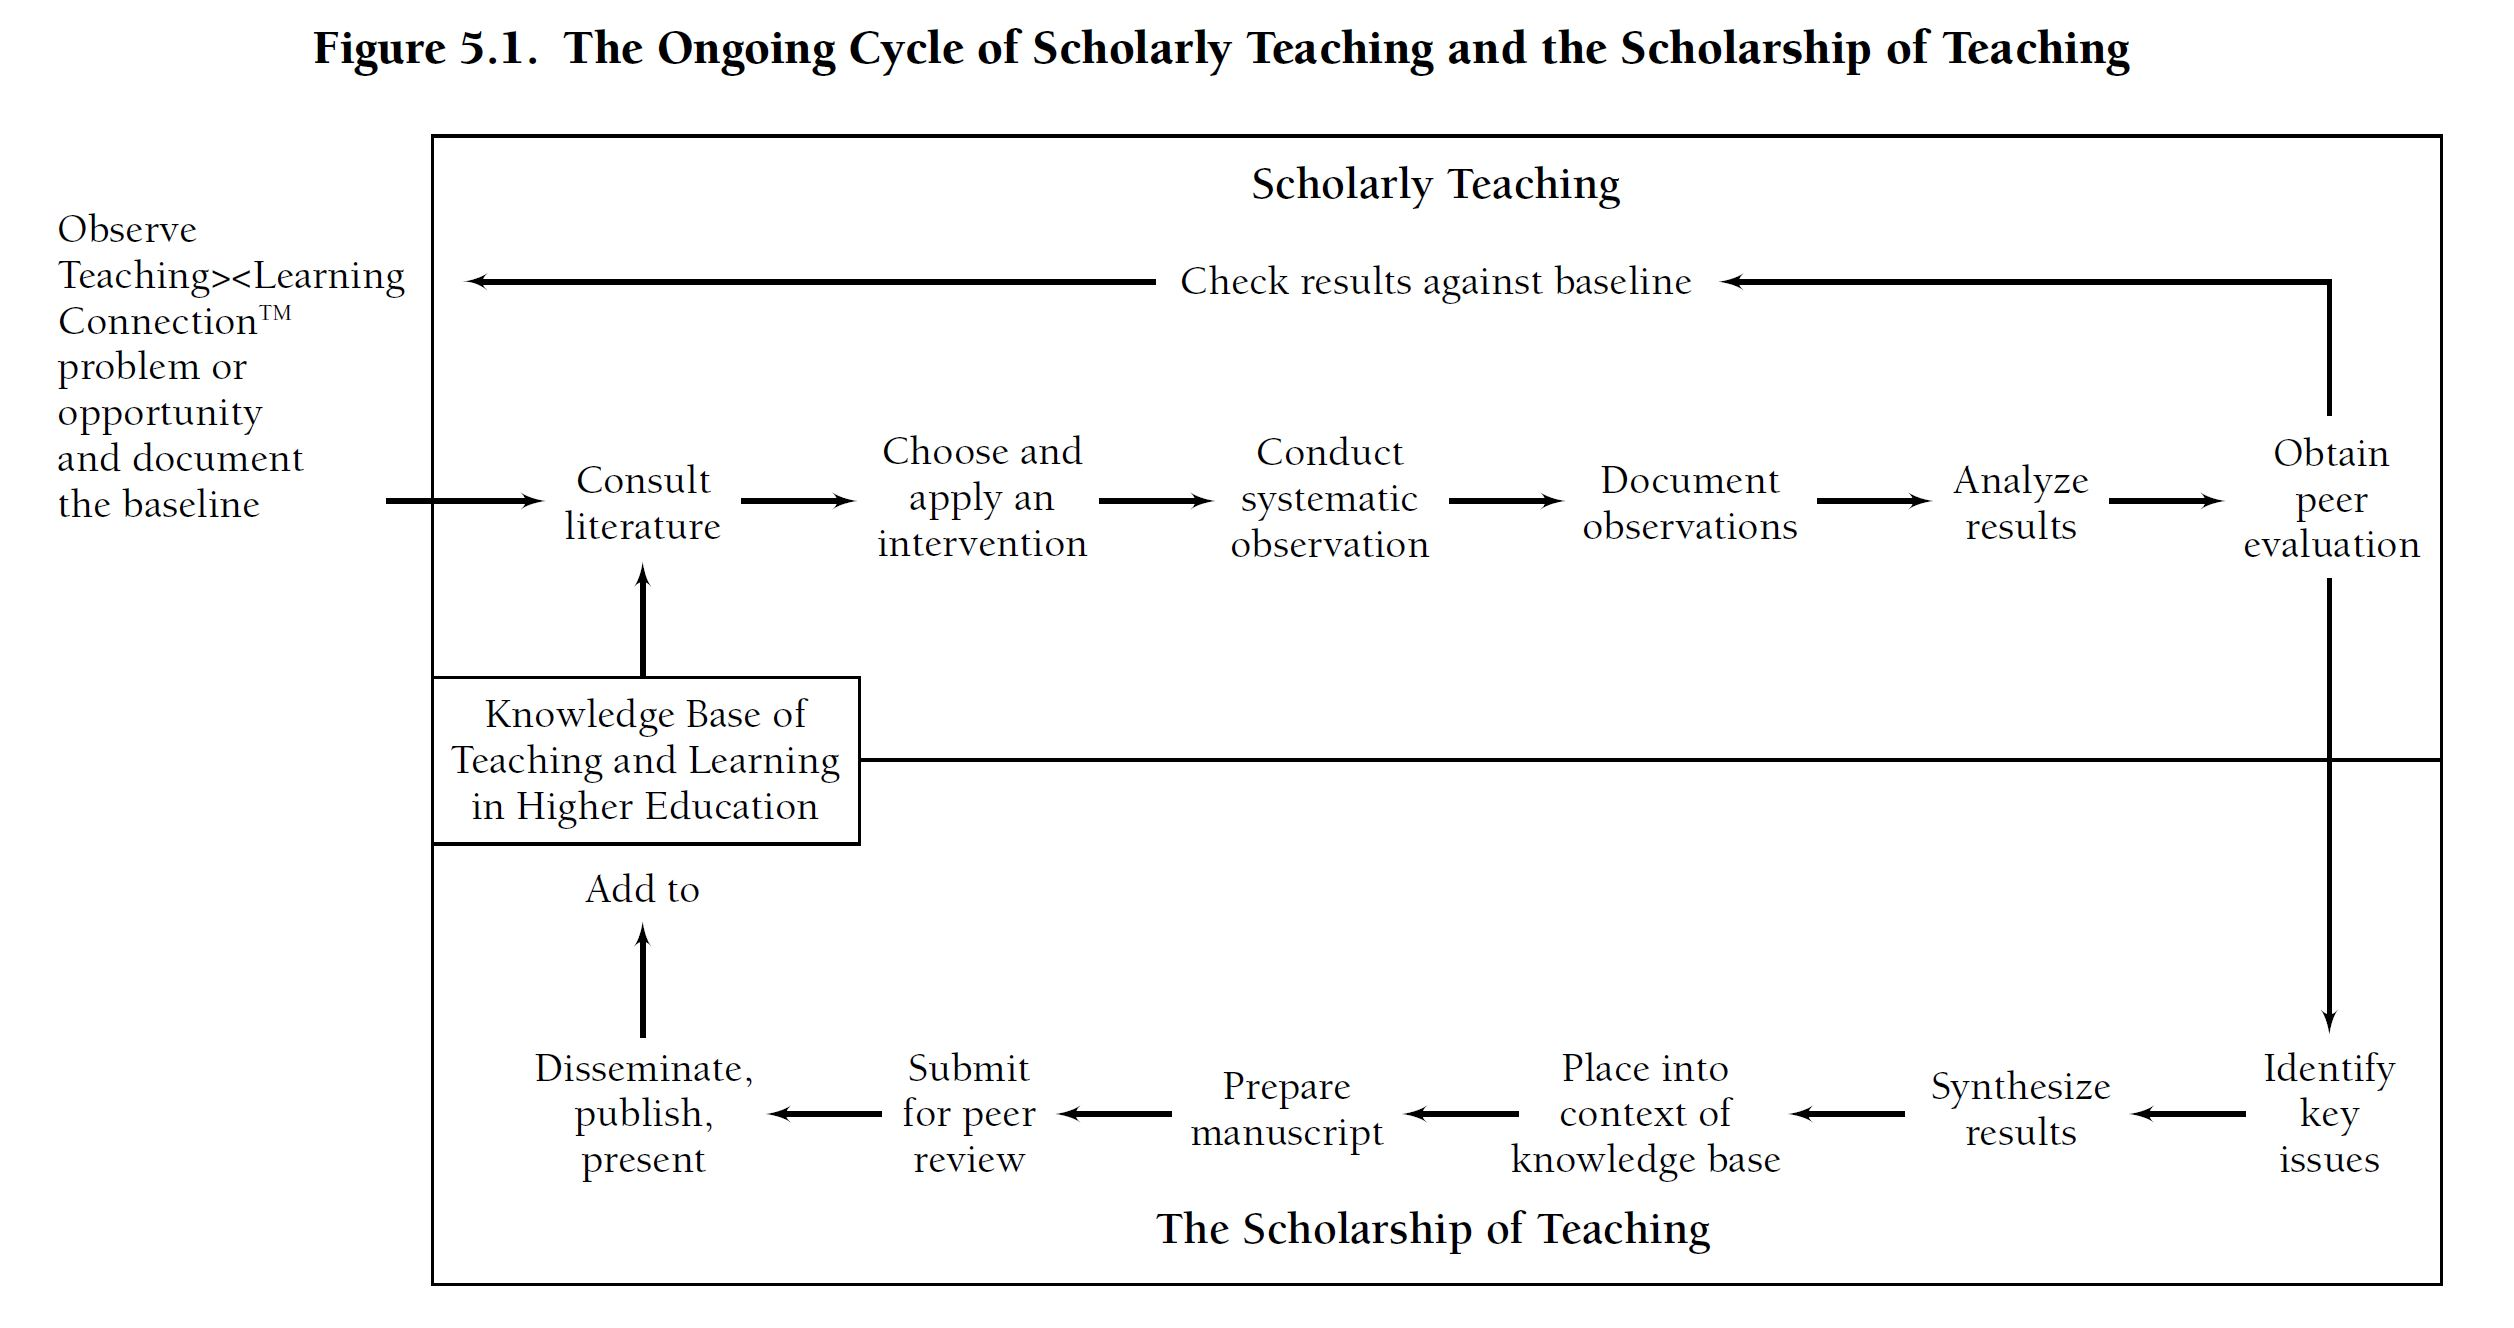 scholarly teaching process